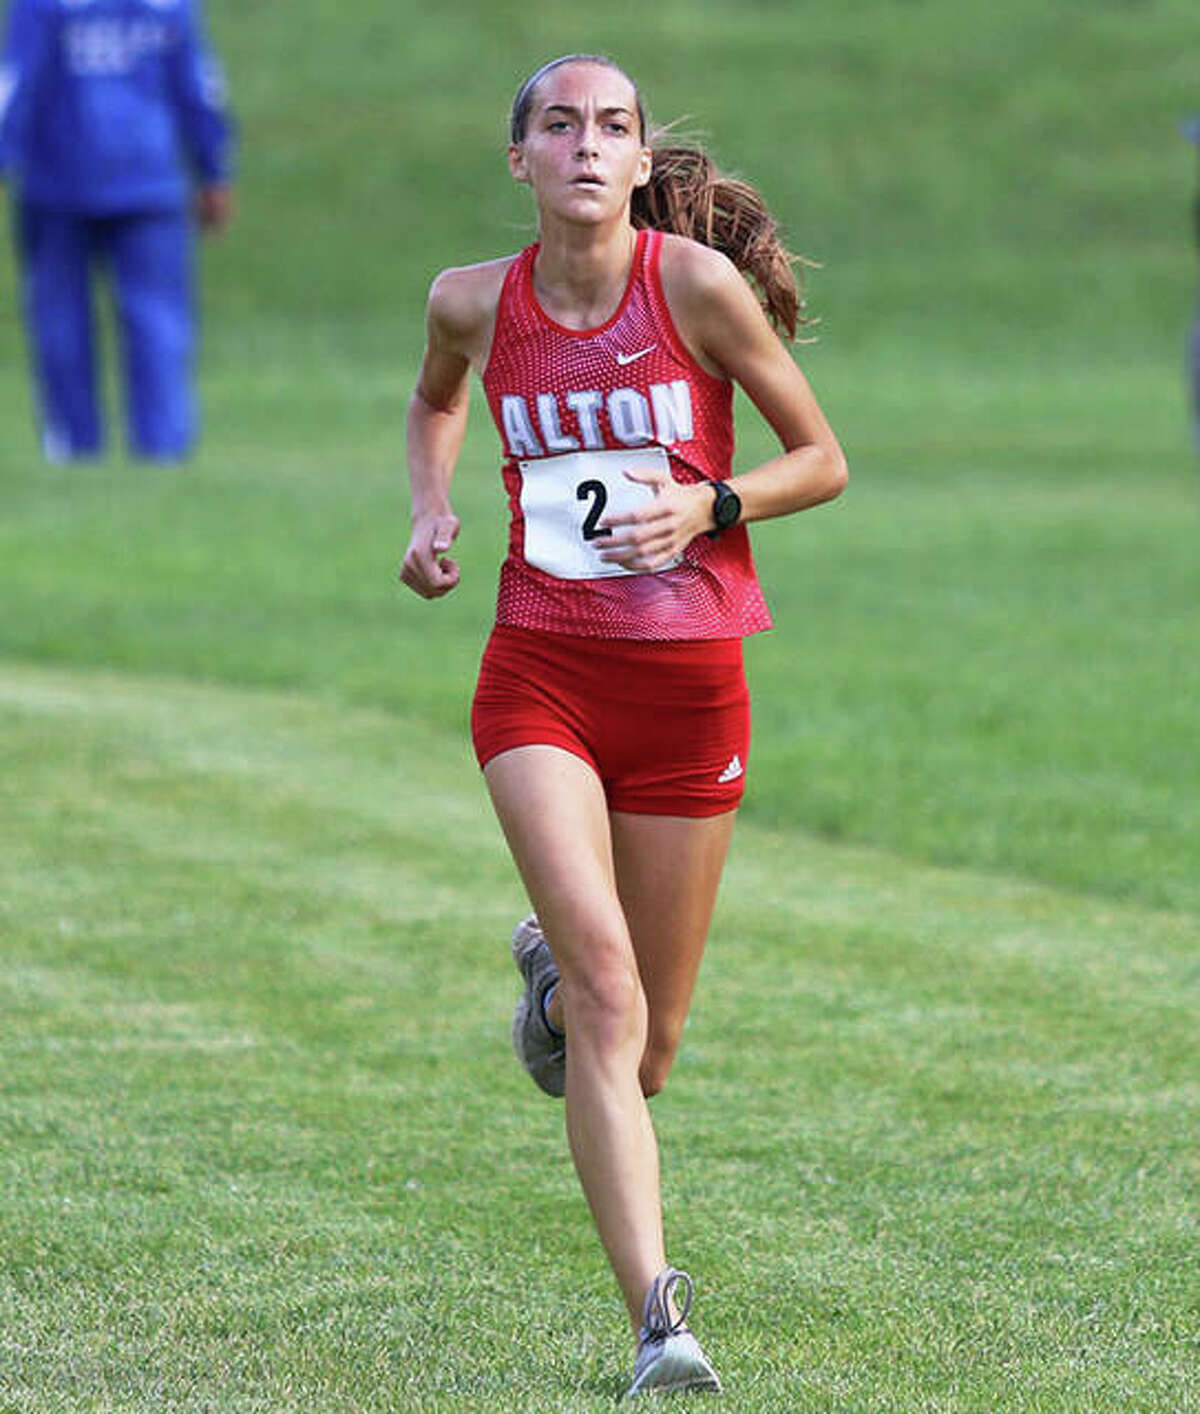 Alton's Sophie Paschal approaches the finish line in second place Wednesday in the Alton Invite. It was the first race run on the new course behind Alton High.